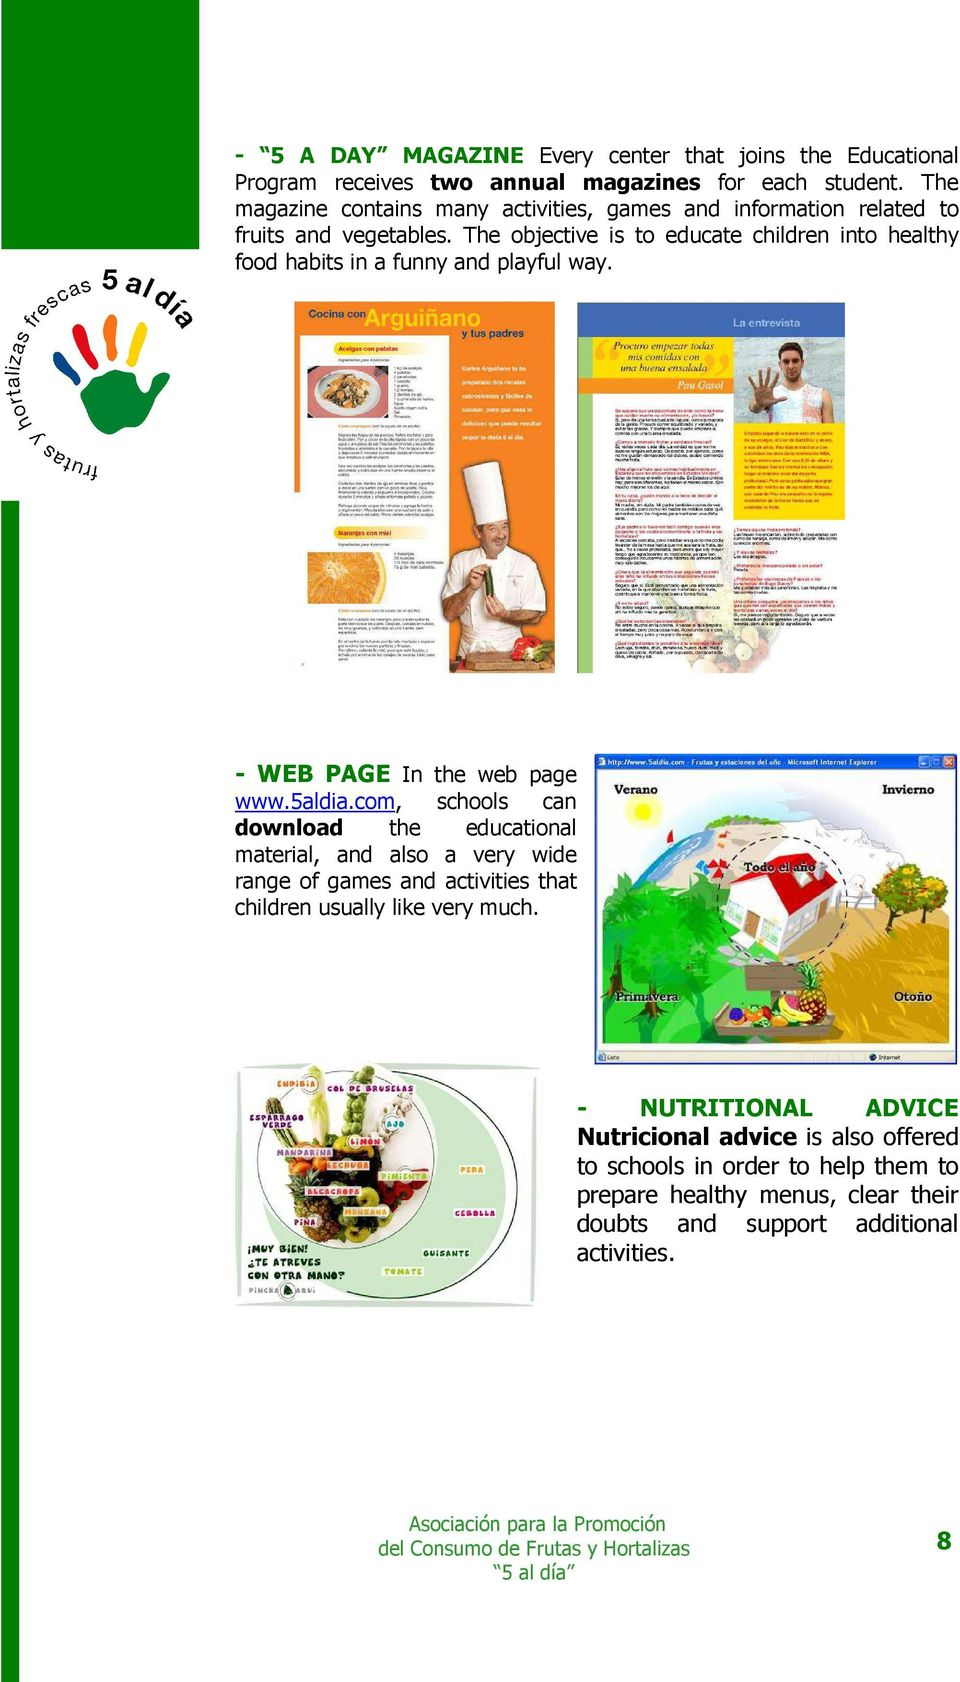 The objective is to educate children into healthy food habits in a funny and playful way. - WEB PAGE In the web page www.5aldia.